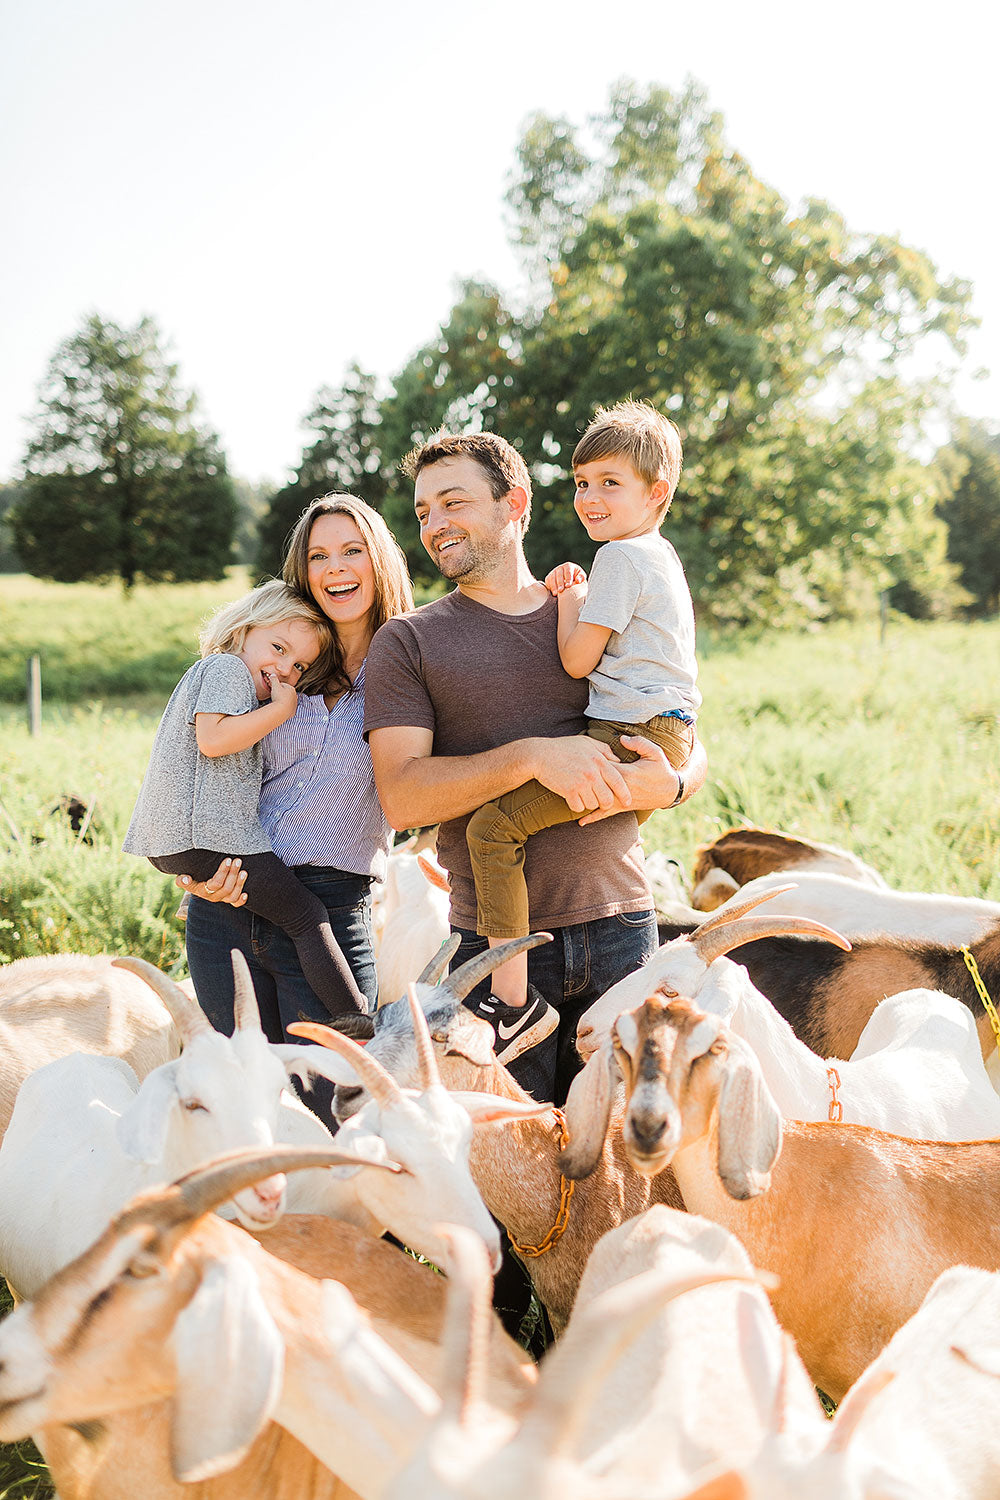 Little Seed Farm from Batch: Tennessee's Woman-Owned Sustainably Produced Soap and Skincare Company